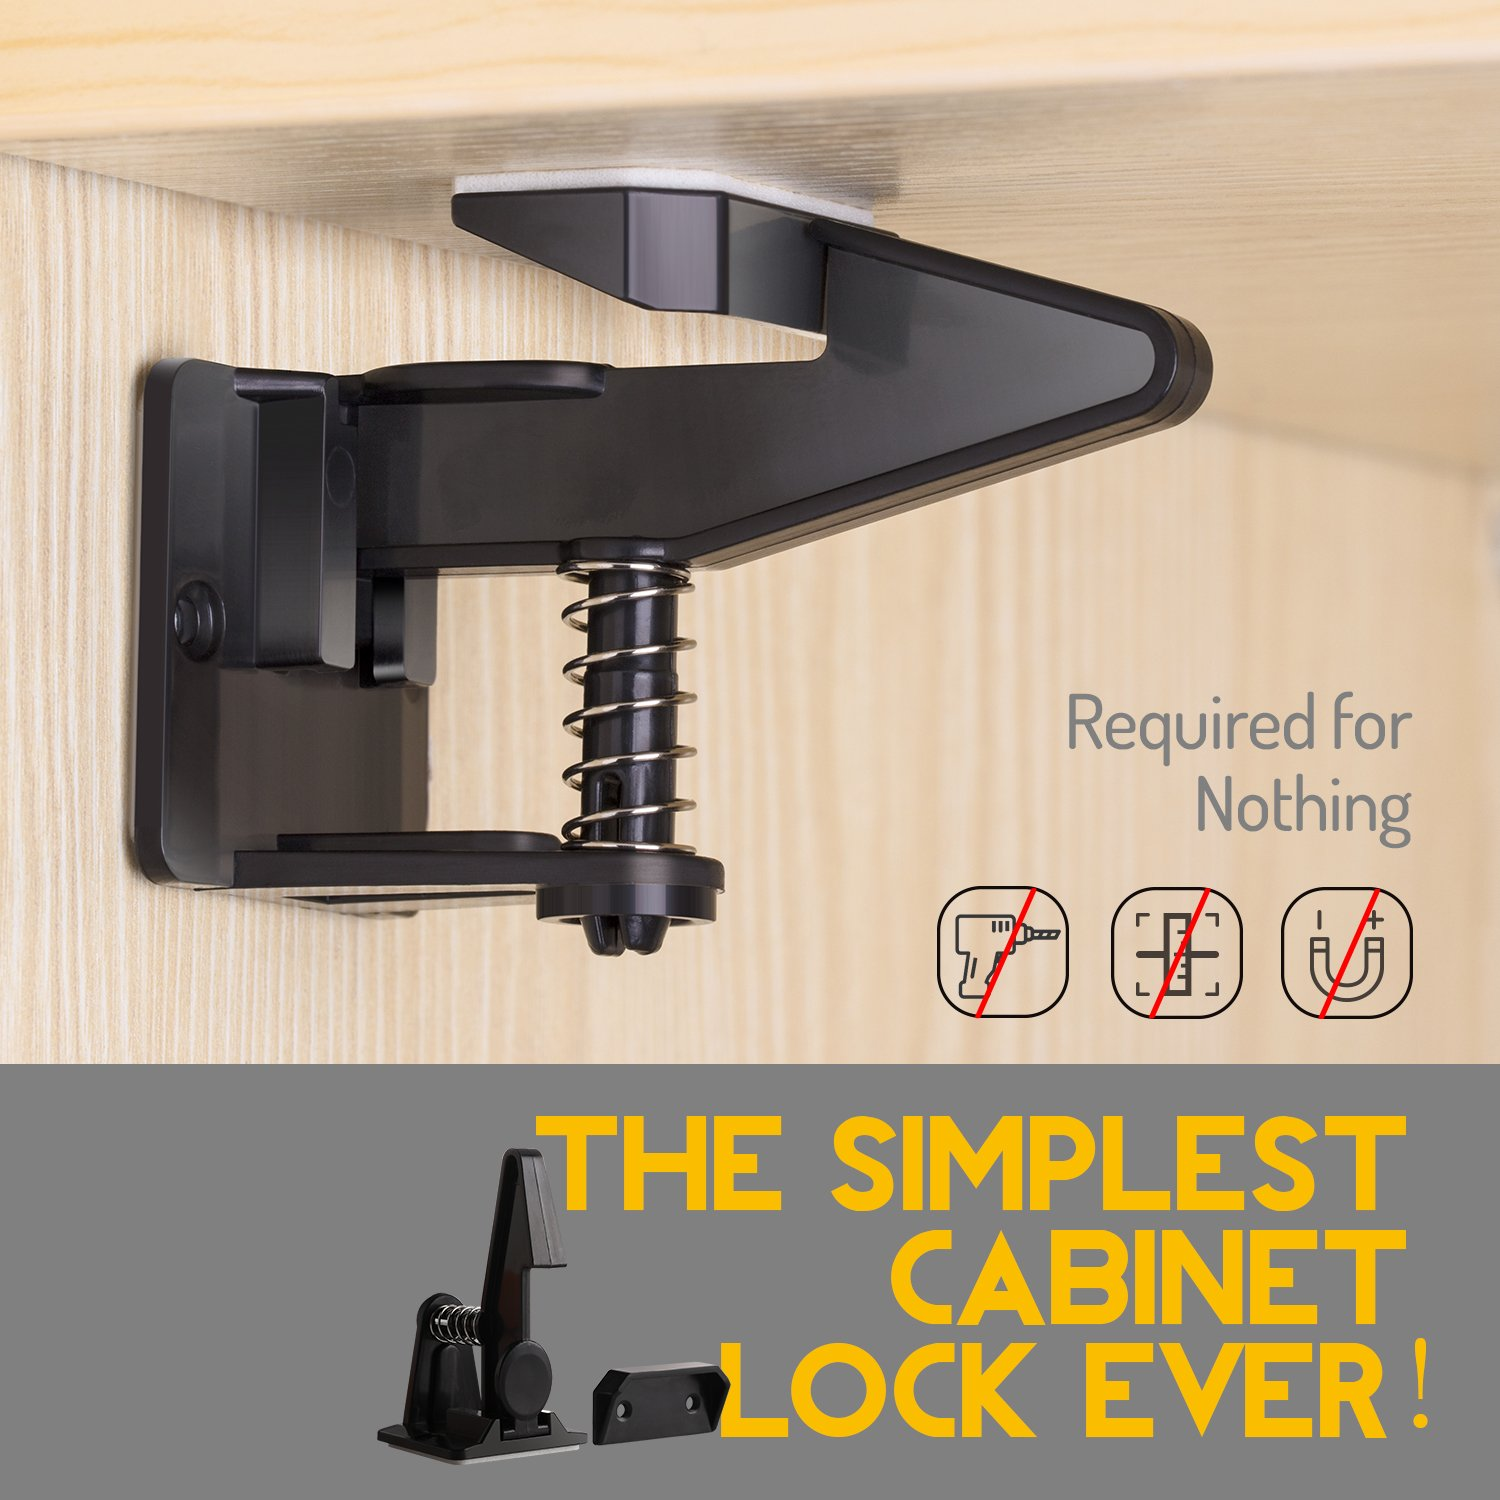 Cabinet Locks Child Safety Latches Locks